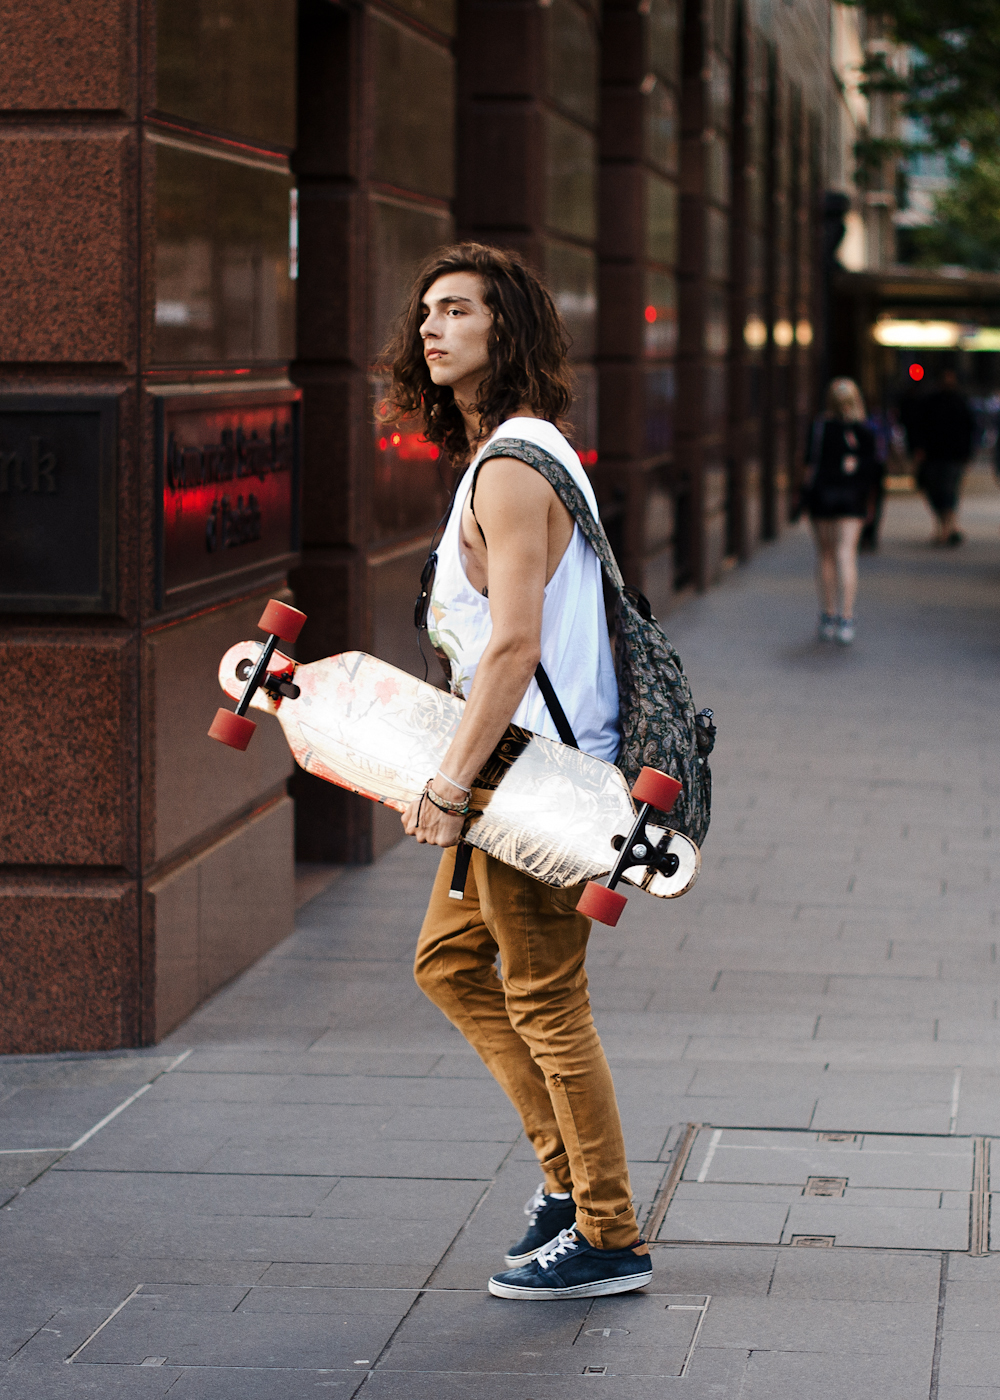 Skate city. Similar look: ASOS Hand Woven Leather Trim Backpack.